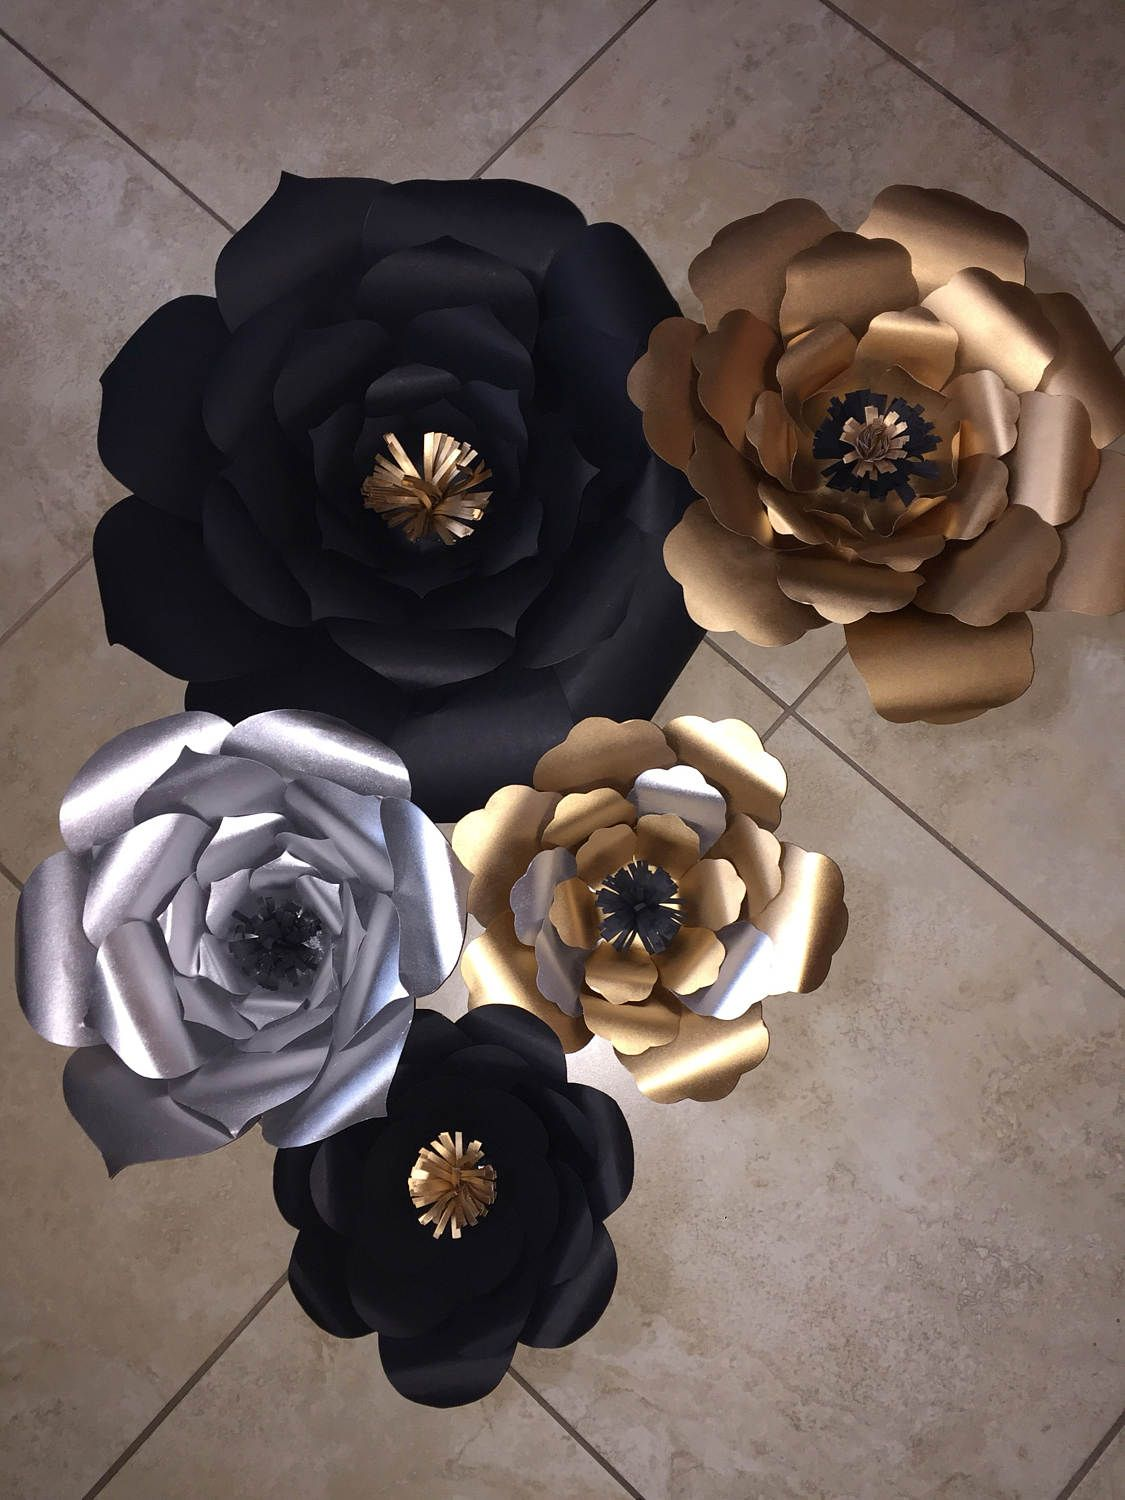 Black gold and silver paper flowers for backdrop by black gold and silver paper flowers for backdrop by bedazzleyoucreations on etsy izmirmasajfo